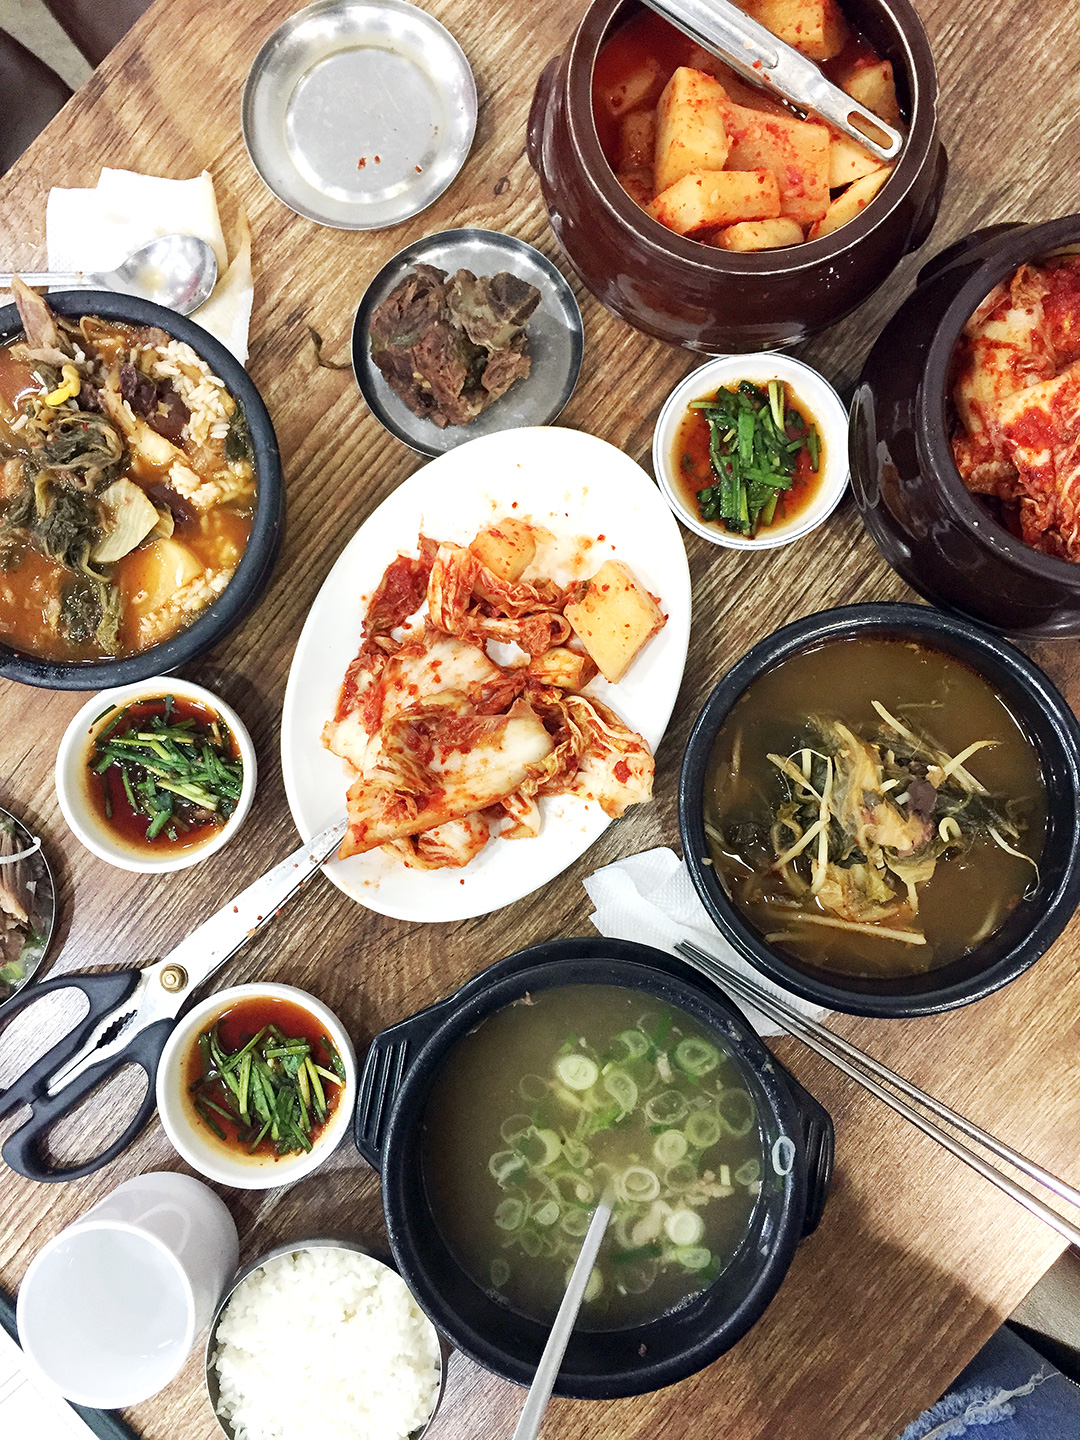 Eun Ho Restaurant (은호식당)  Info: This restaurant is a favorite of locals and in the heart of the Namdaemun wholesale shopping district. It's been here for over 80 years!Come here for traditional soups and yummy kimchi! Dishes: Gukbap, Siraegi Guk, Seollungtang Address: 50-43 Namchang-dong, Jung-gu, Seoul  남대문시장 · 서울시 중구 남창동 50-43   Website